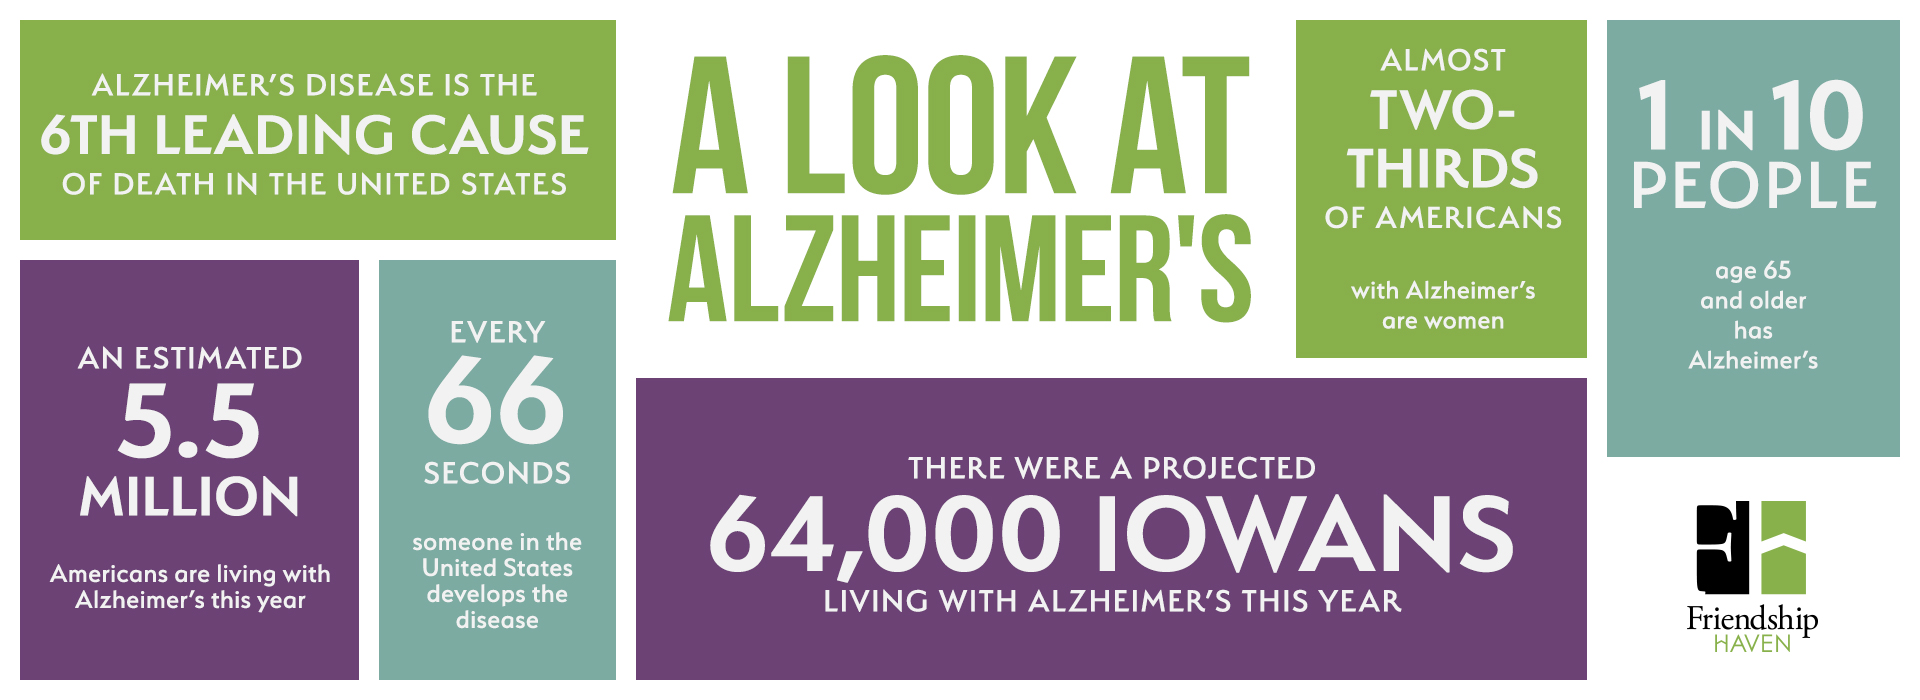 A Look At Alzheimer's